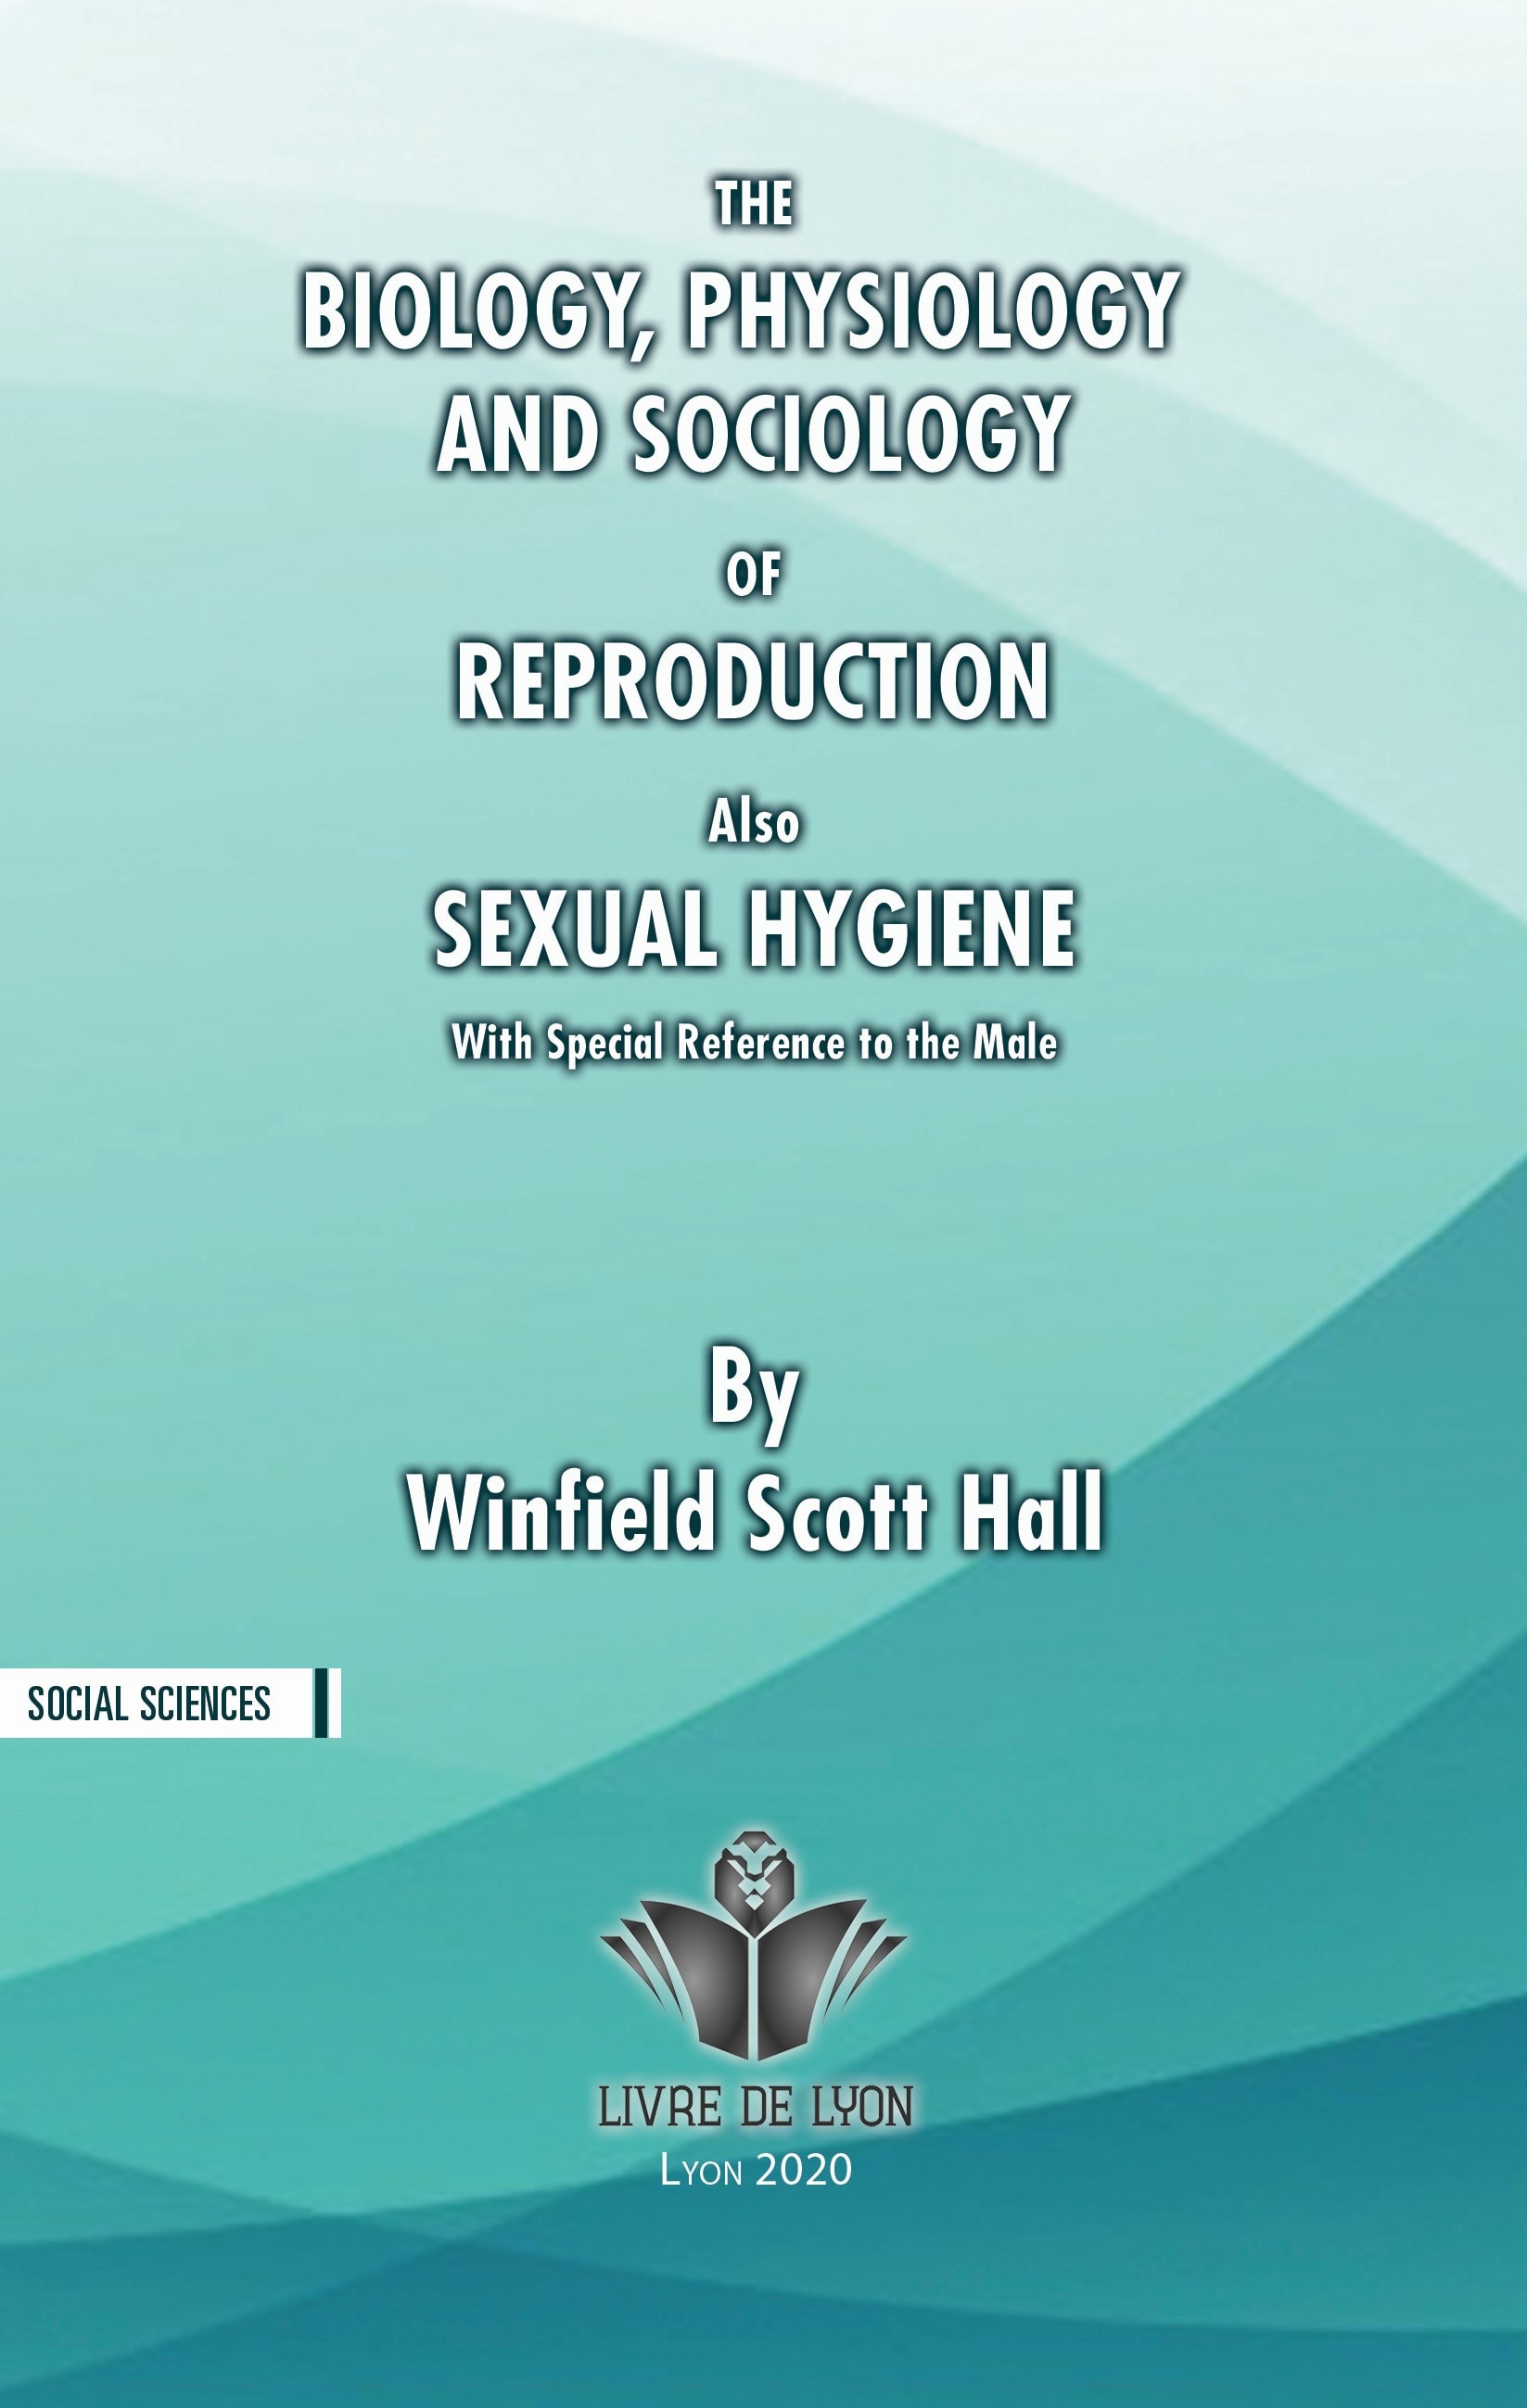 The Biology, Physiology and Sociology of Reproduction Also Sexual Hygiene